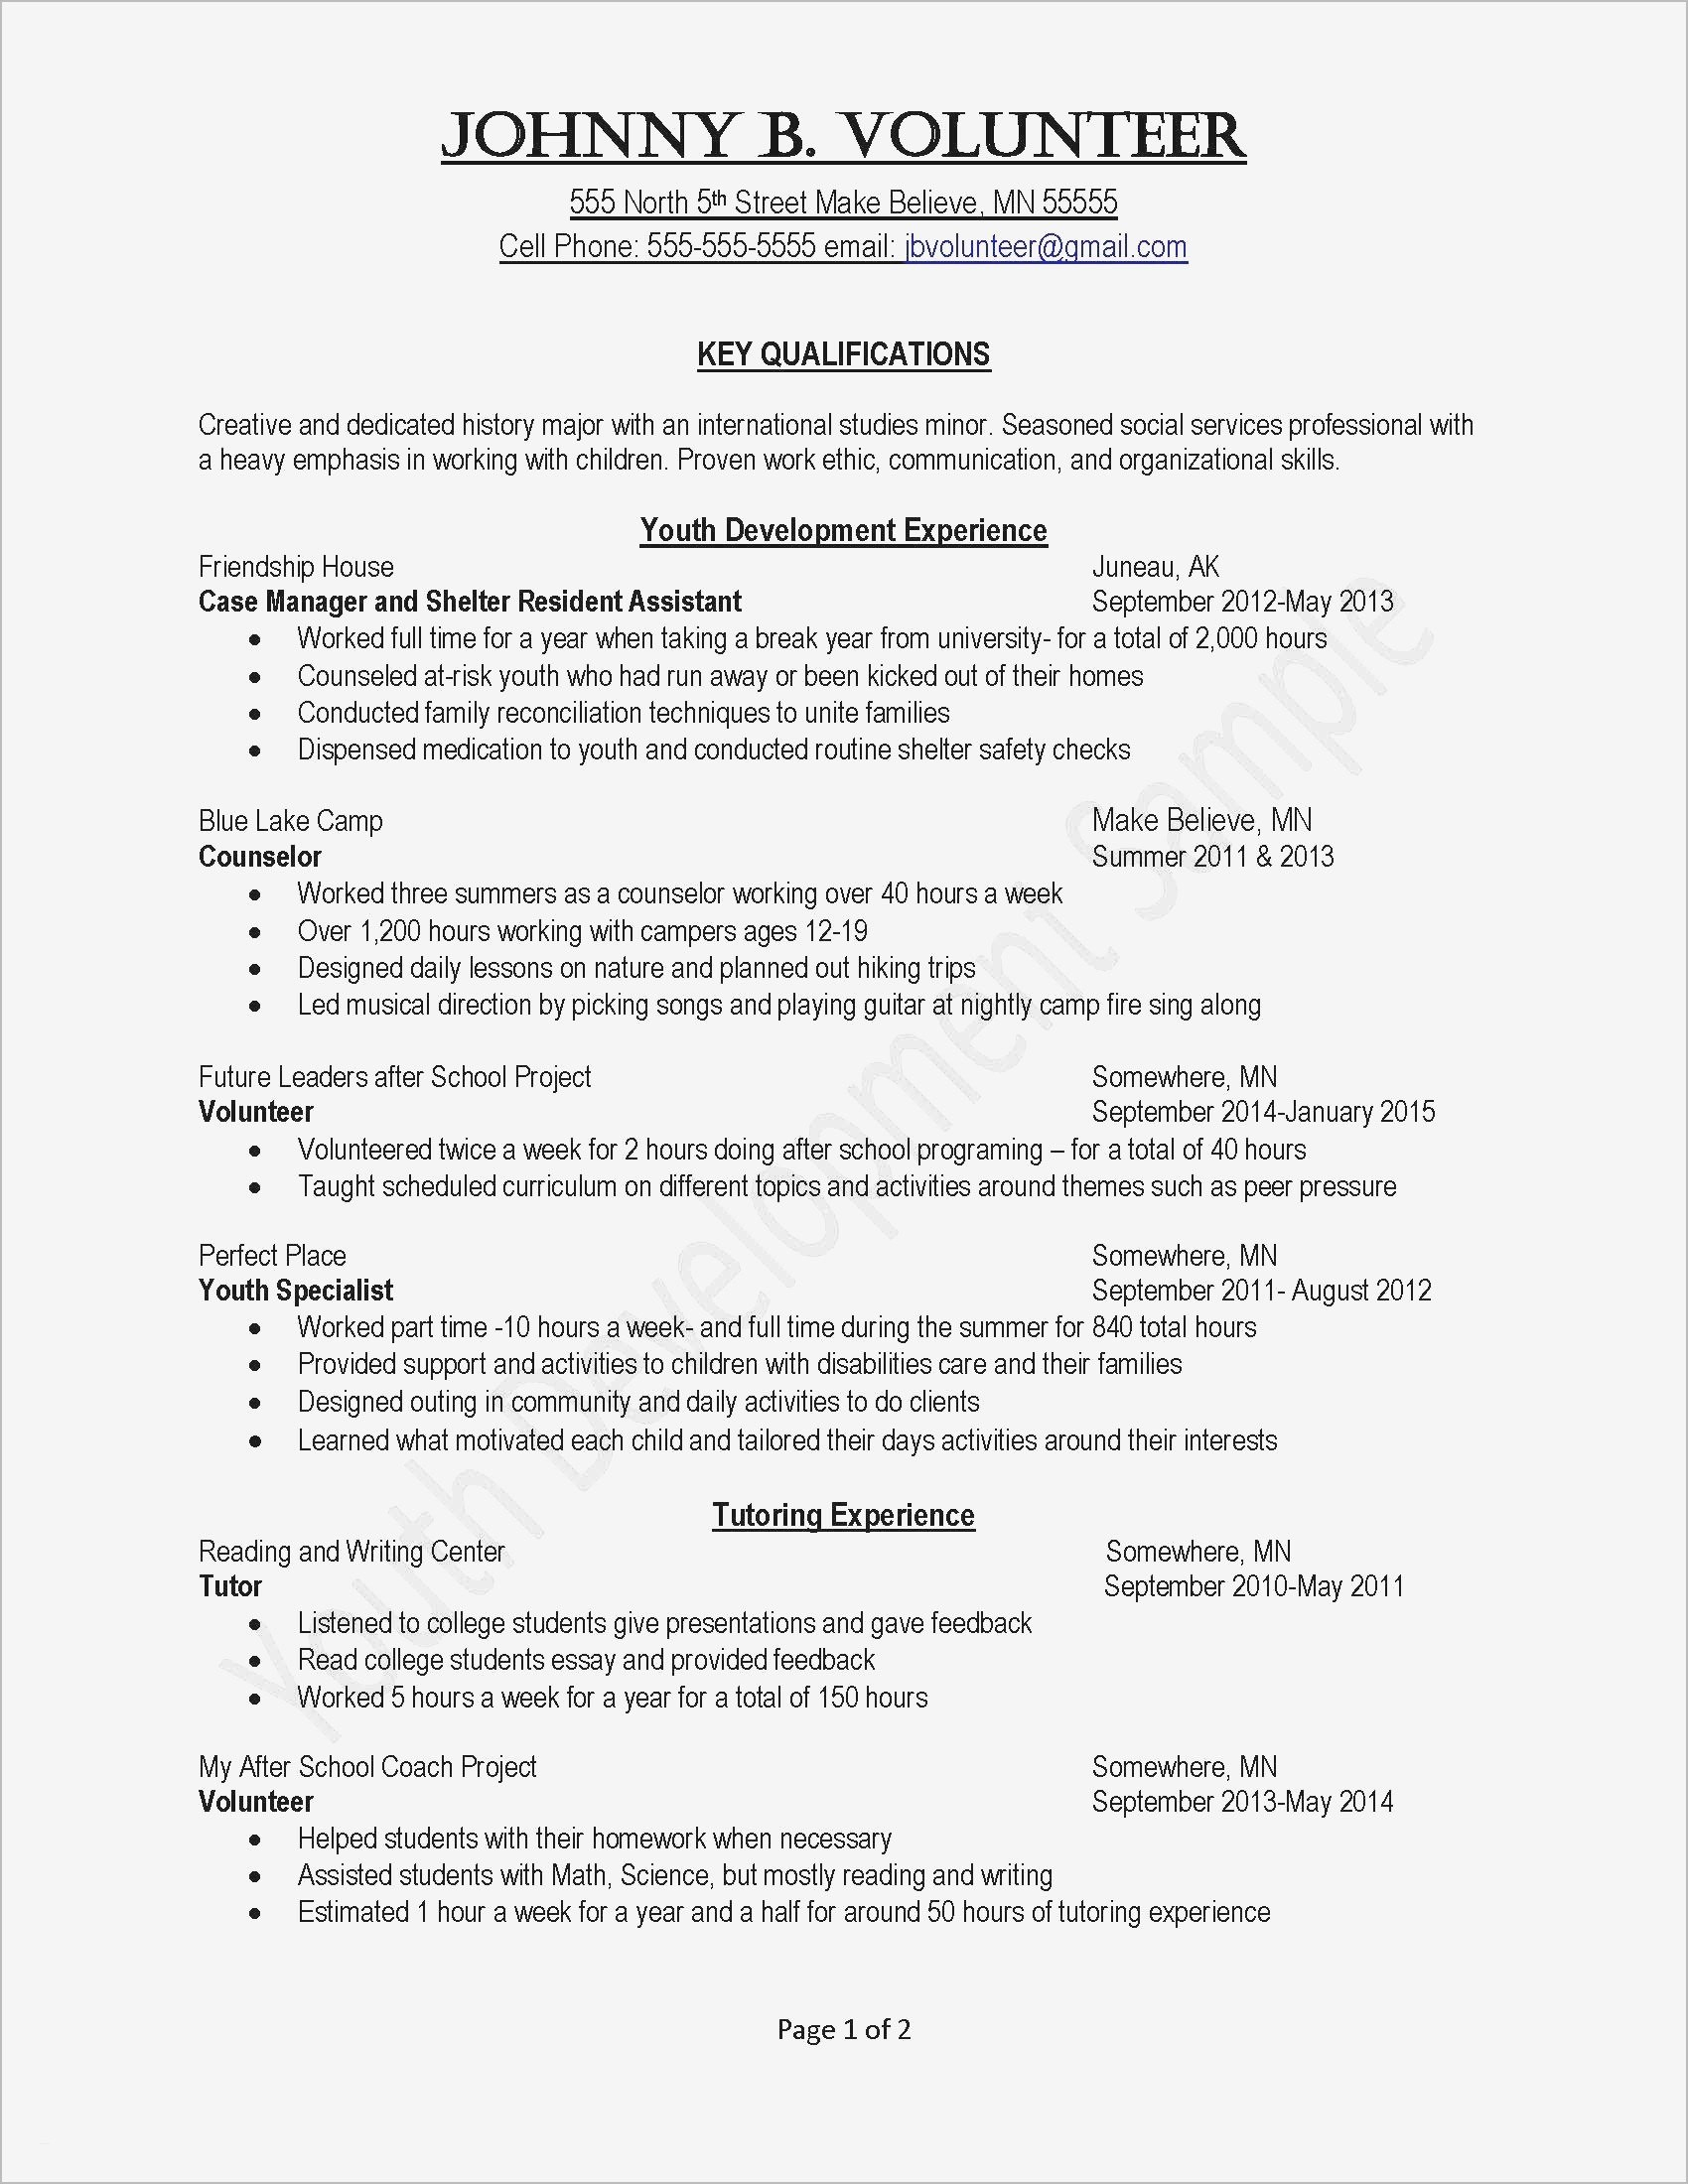 Education Cover Letter Template - Job Fer Letter Template Us Copy Od Consultant Cover Letter Fungram